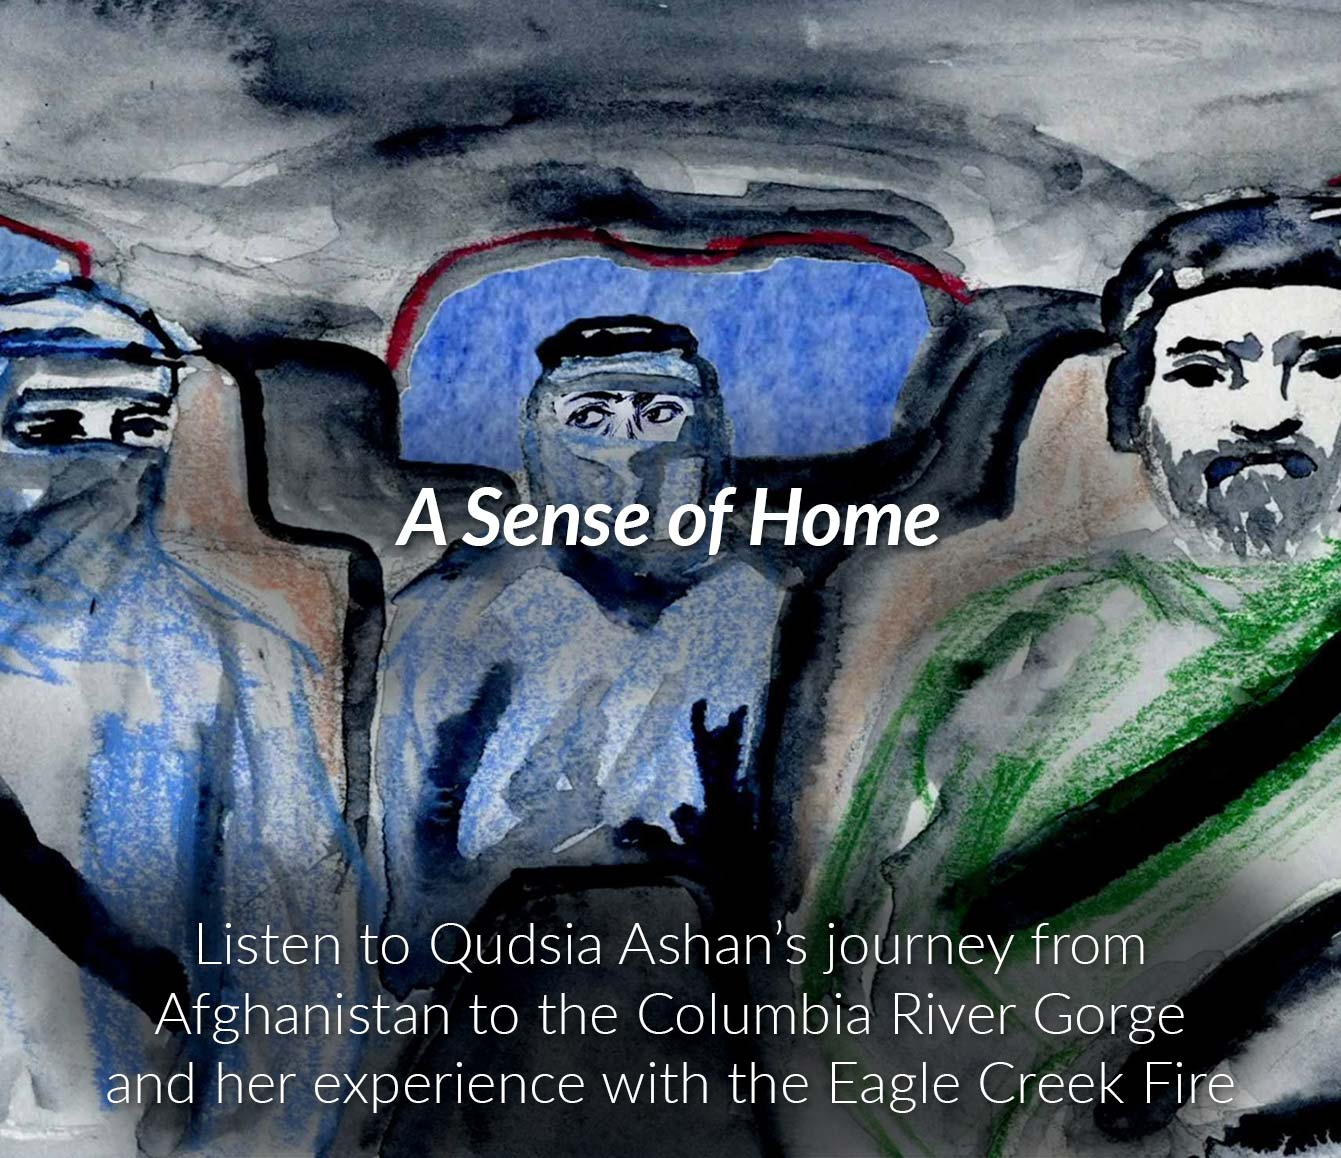 A Sense of Home - Listen to the podcast below to learn more about Qudsia's flight as a refugee from Afghanistan to the United States, and how her path has taken her from Kabul, to UCLA valedictorian, to the Columbia River Gorge. Click the image to the left for the animated multimedia experience by artist Laura Medina.